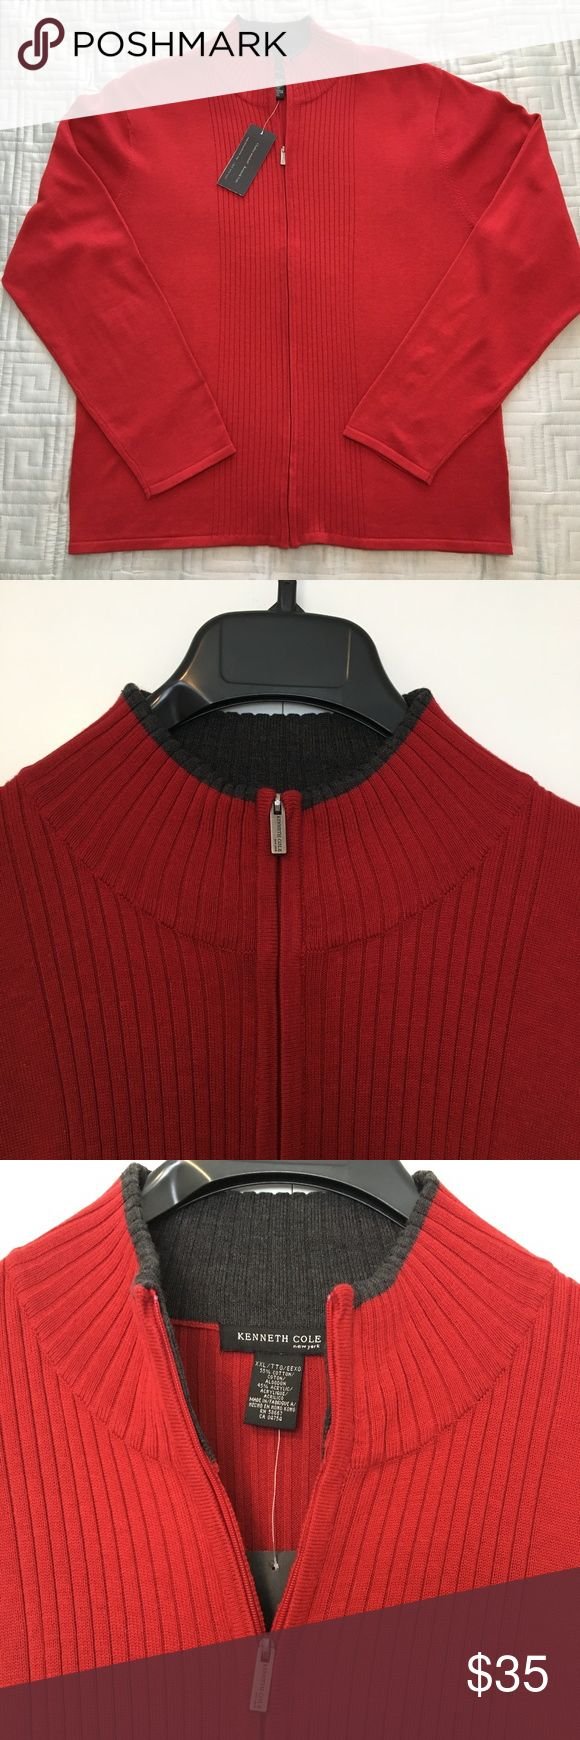 NWT Mens Full Zip Sweater New with tags Mens Kenneth Cole full zip sweater. Kenneth Cole Sweaters Cardigan